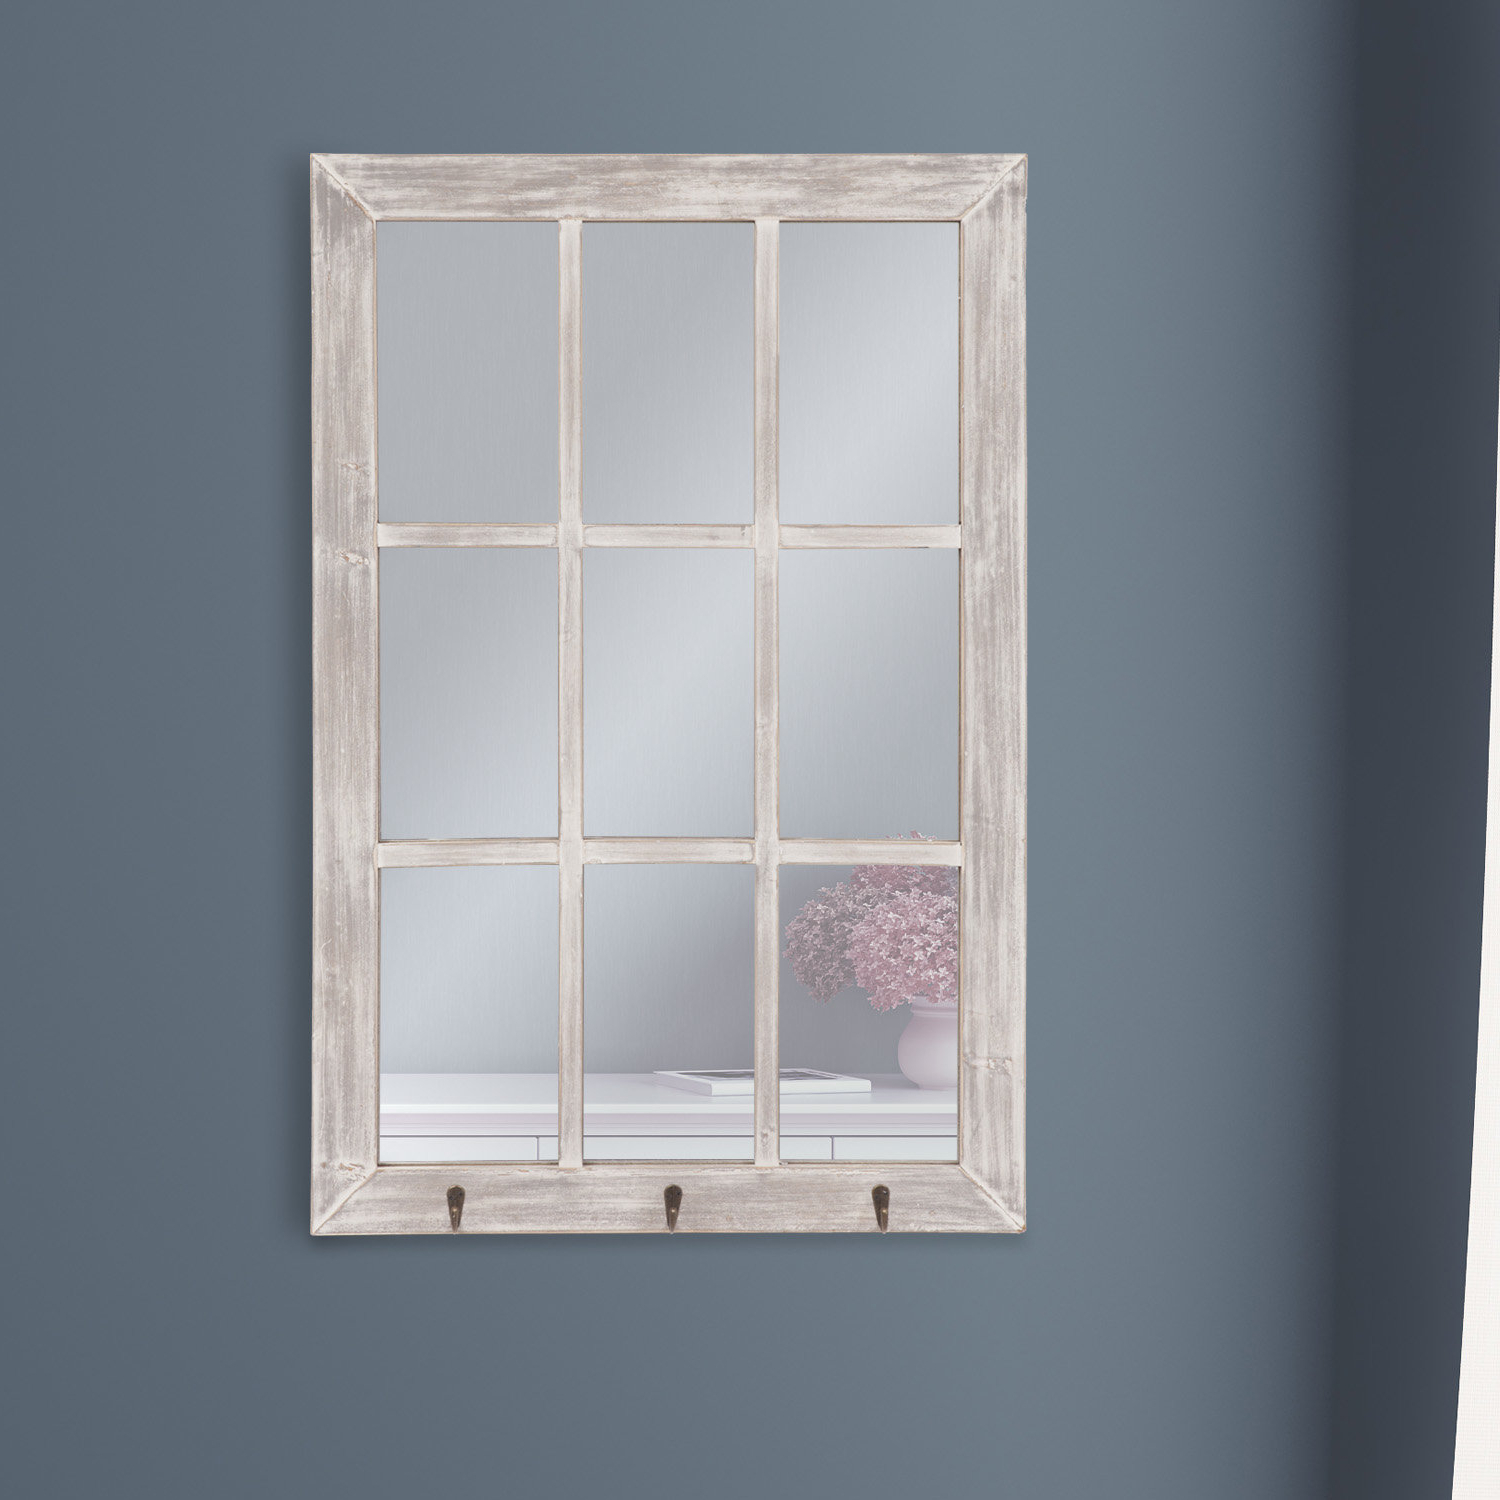 Trendy 2 Piece Kissena Window Pane Accent Mirror Sets For Lystra Distressed Rustic Accent Mirror (Gallery 11 of 20)